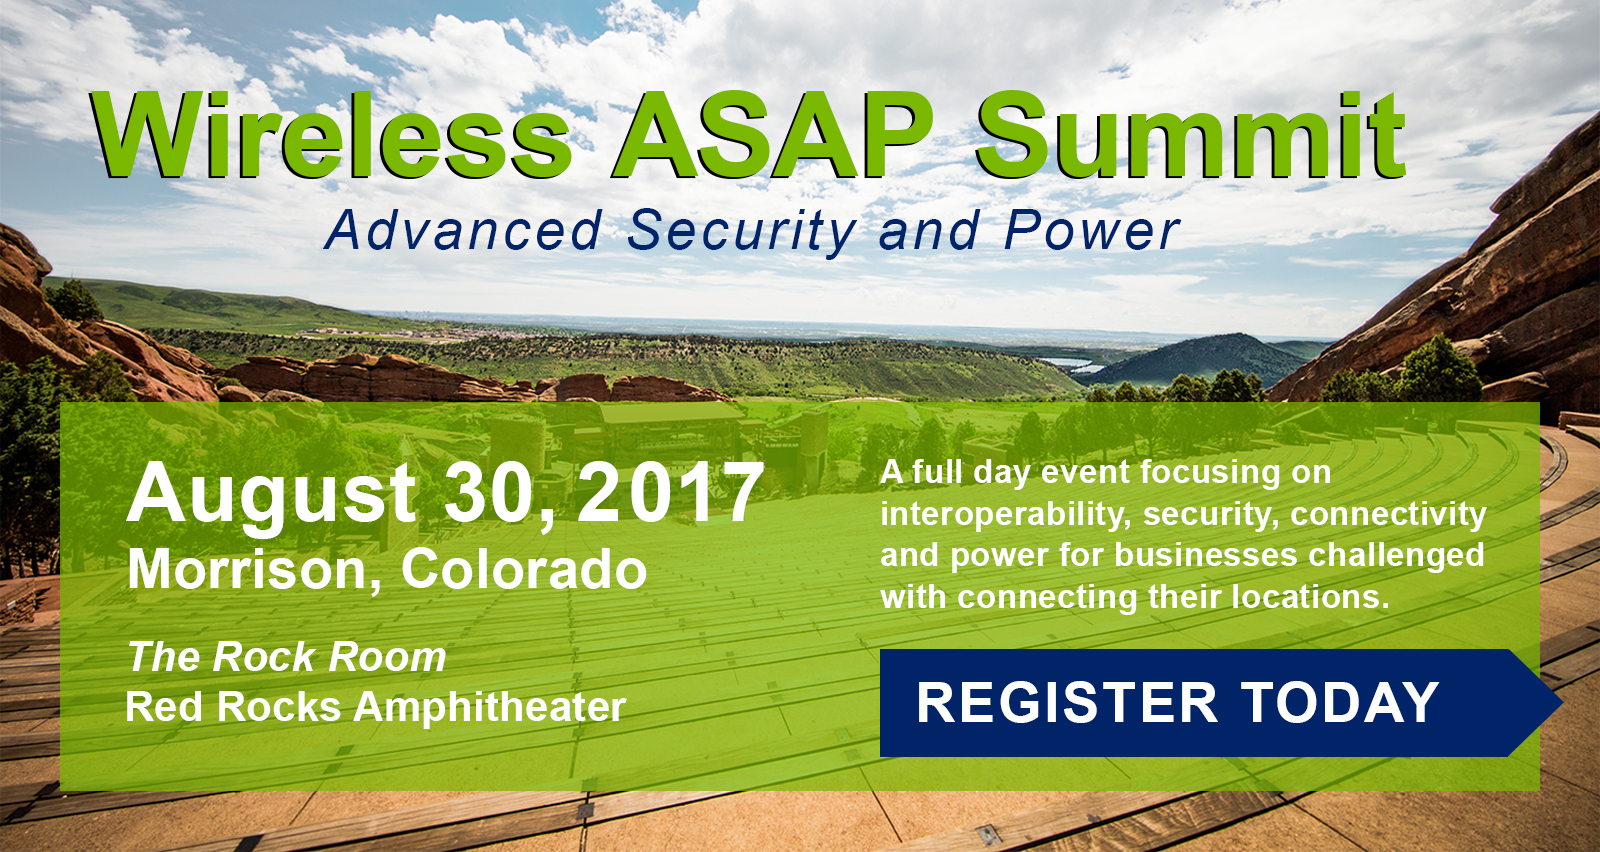 Wireless ASAP Summit